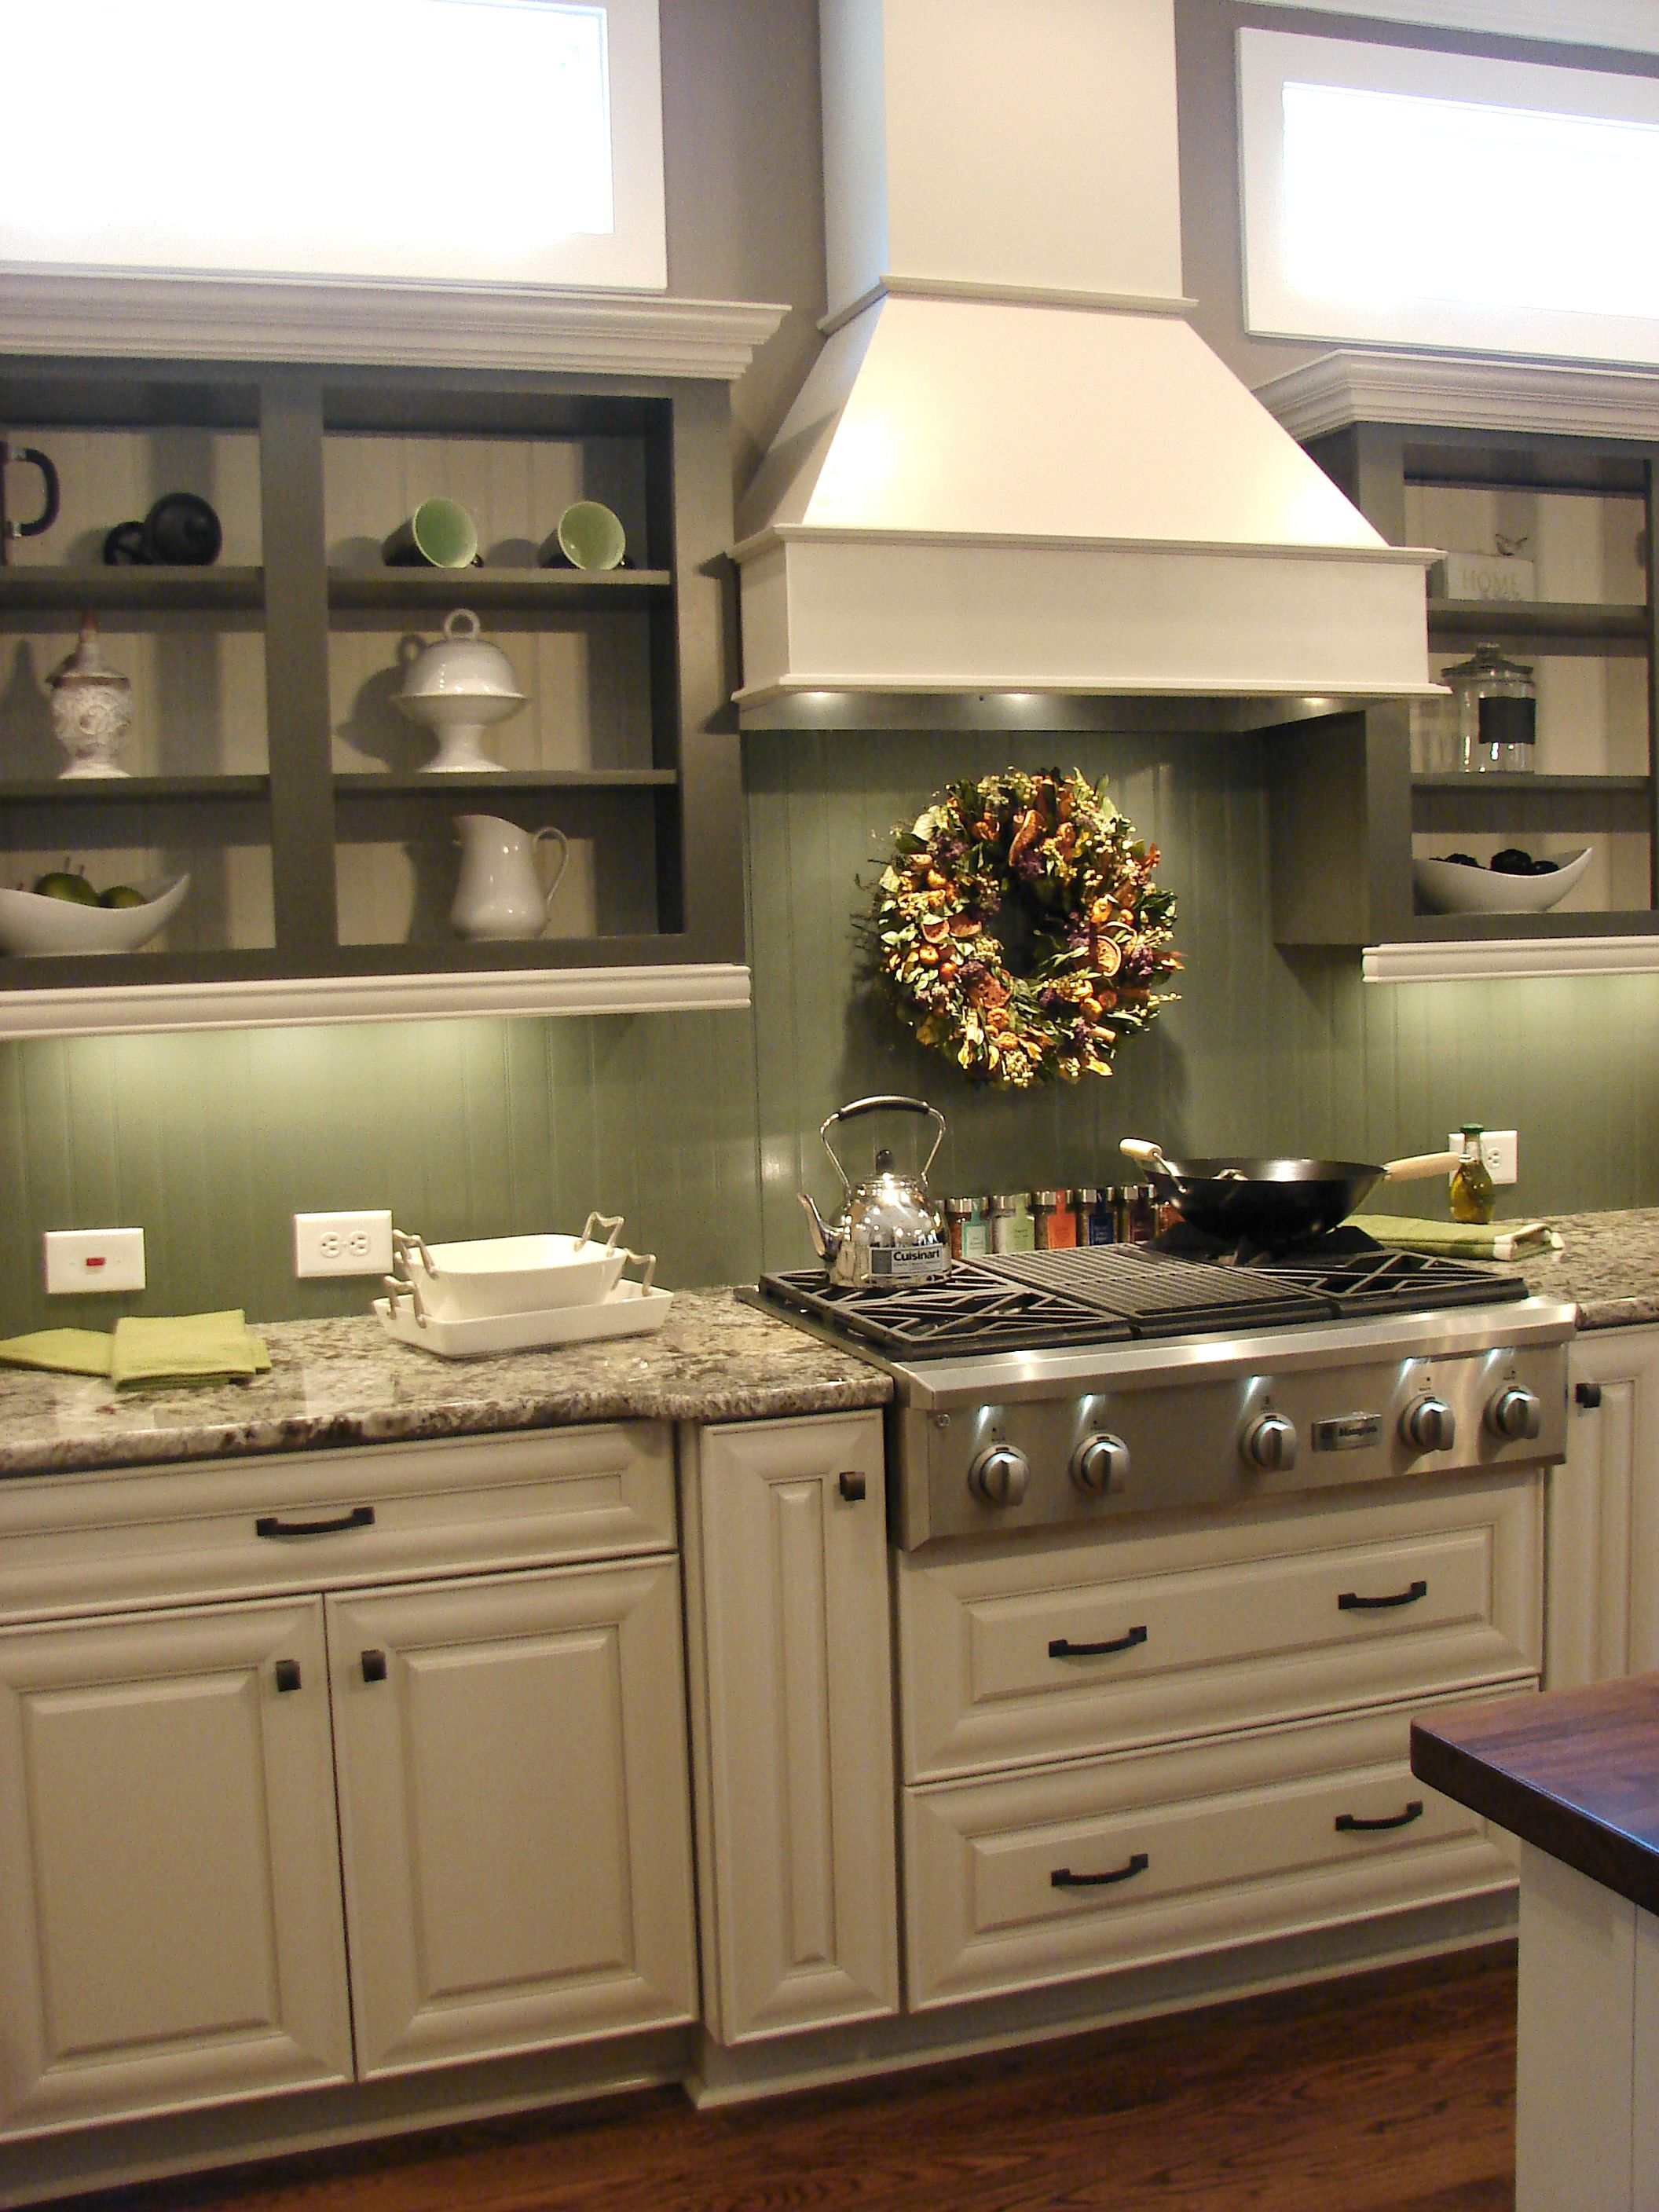 Green country kitchen - Beadboard Backsplash In A High Gloss Paint Either White Or Green Is The Other Option For Our Kitchen Think Black Greenish Granite Counters And